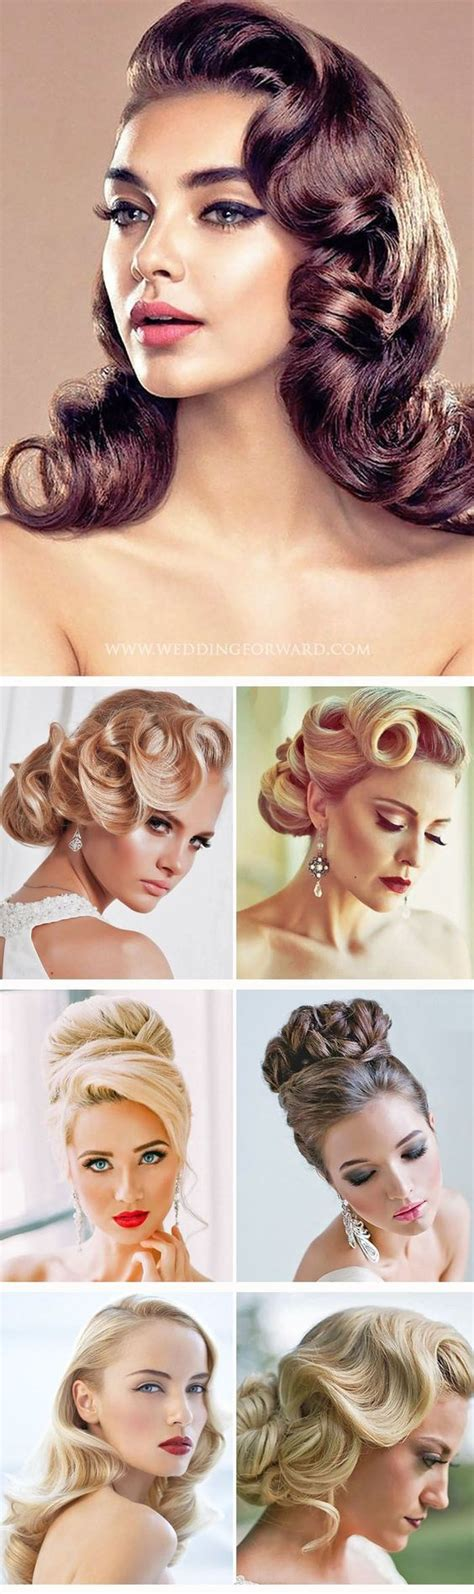 Vintage Wedding Hairstyles How To by 27 Utterly Gorgeous Vintage Wedding Hairstyles Style And